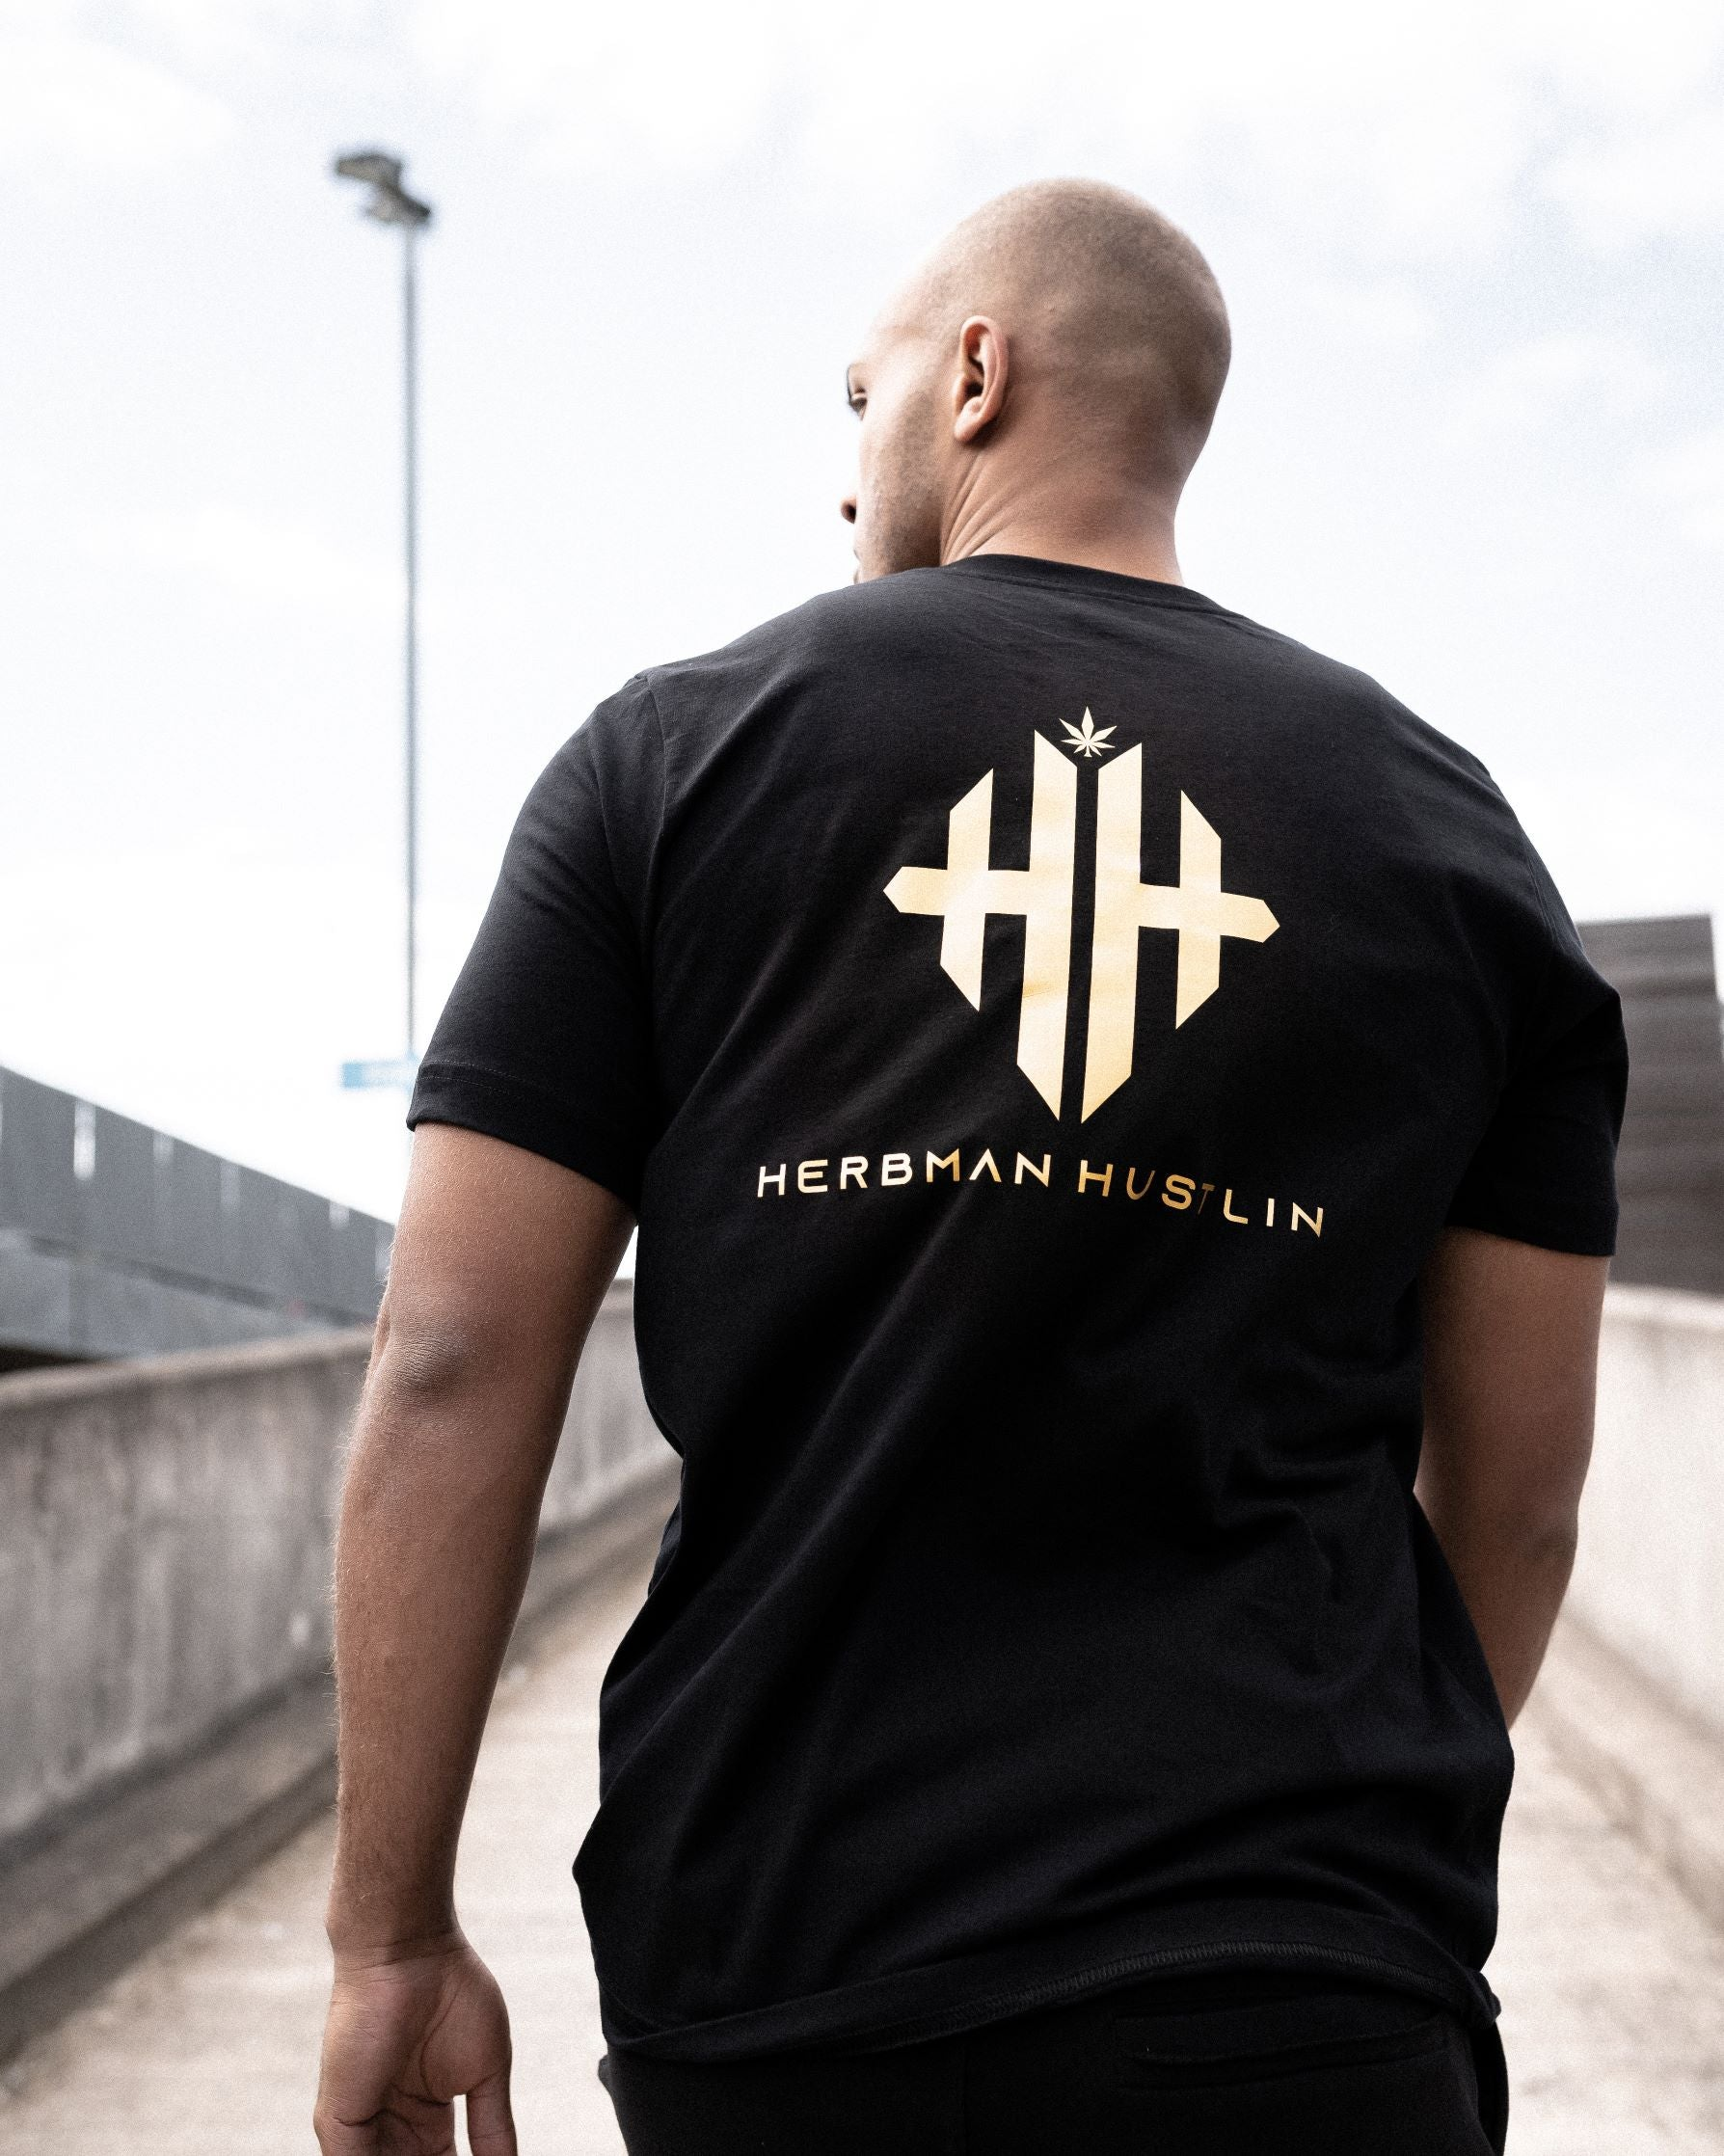 Herbman Hustlin Monogram Back Print Tee - Black/Gold - Back